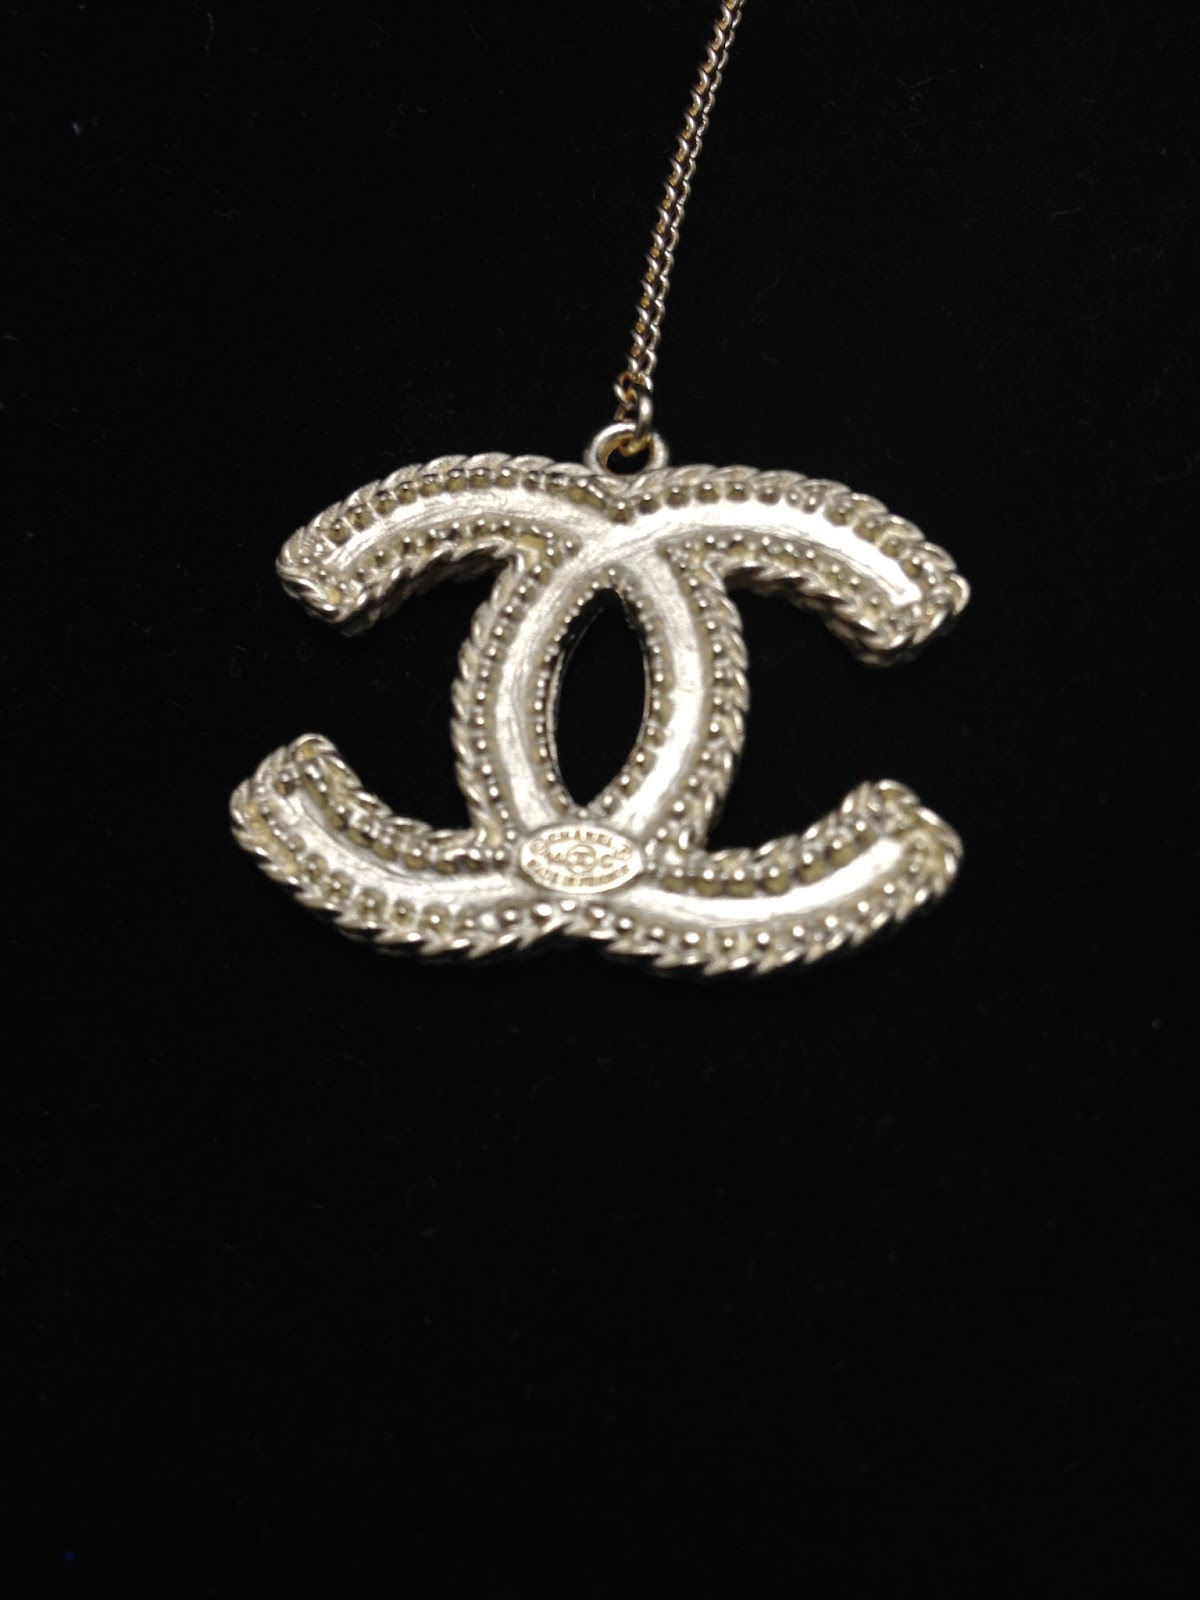 Chanel Earrings For Sale Chanel Earrings Large Cc Logo